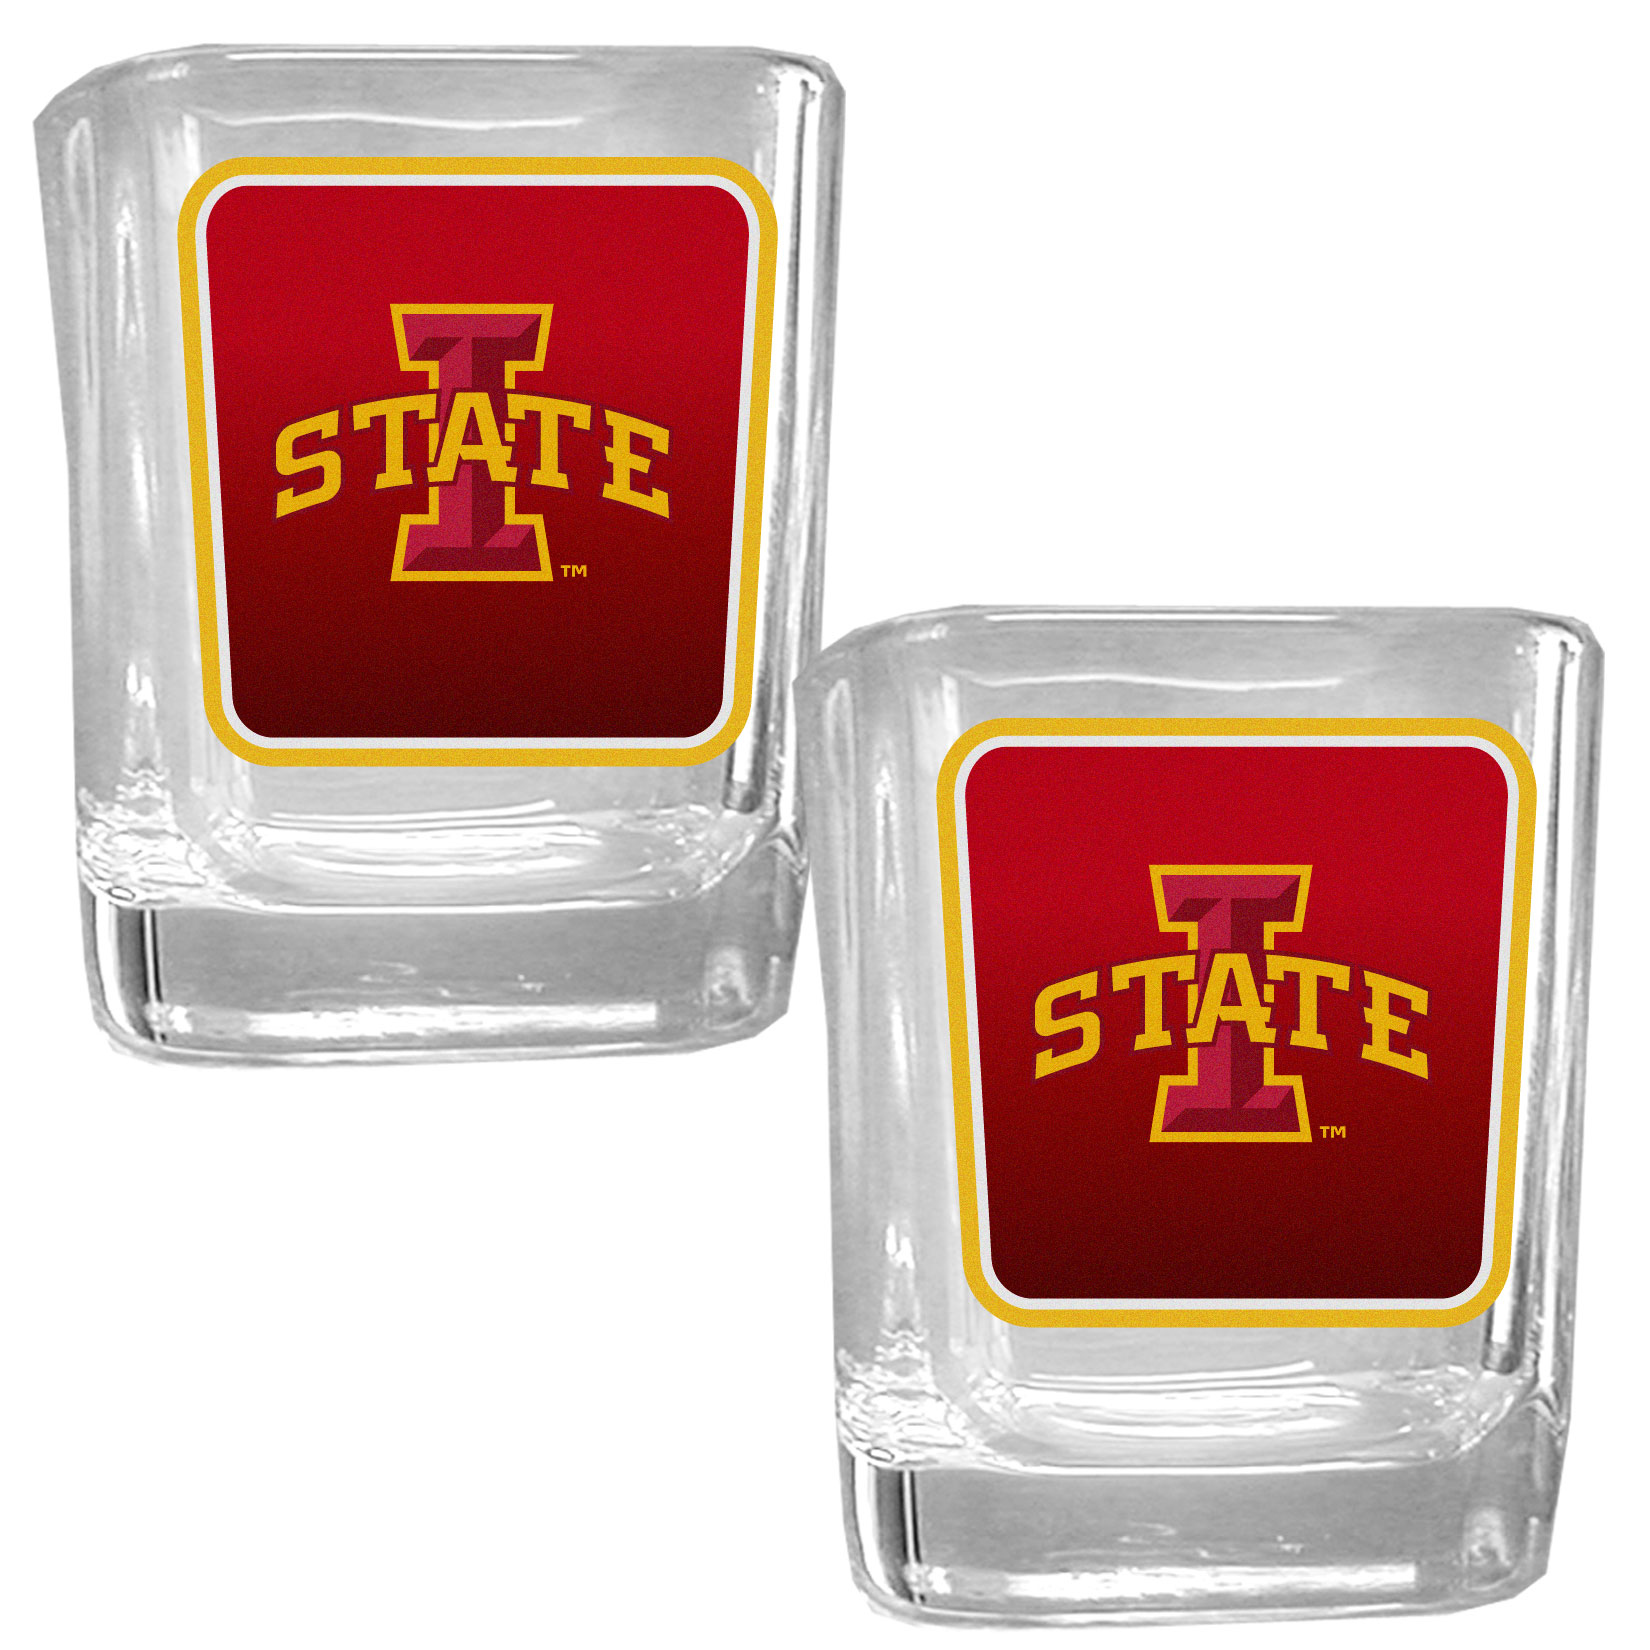 Iowa St. Cyclones Square Glass Shot Glass Set - Our glass shot glasses are perfect for collectors or any game day event. The 2 ounce glasses feature bright, vidid digital Iowa St. Cyclones graphics. Comes in a set of 2.